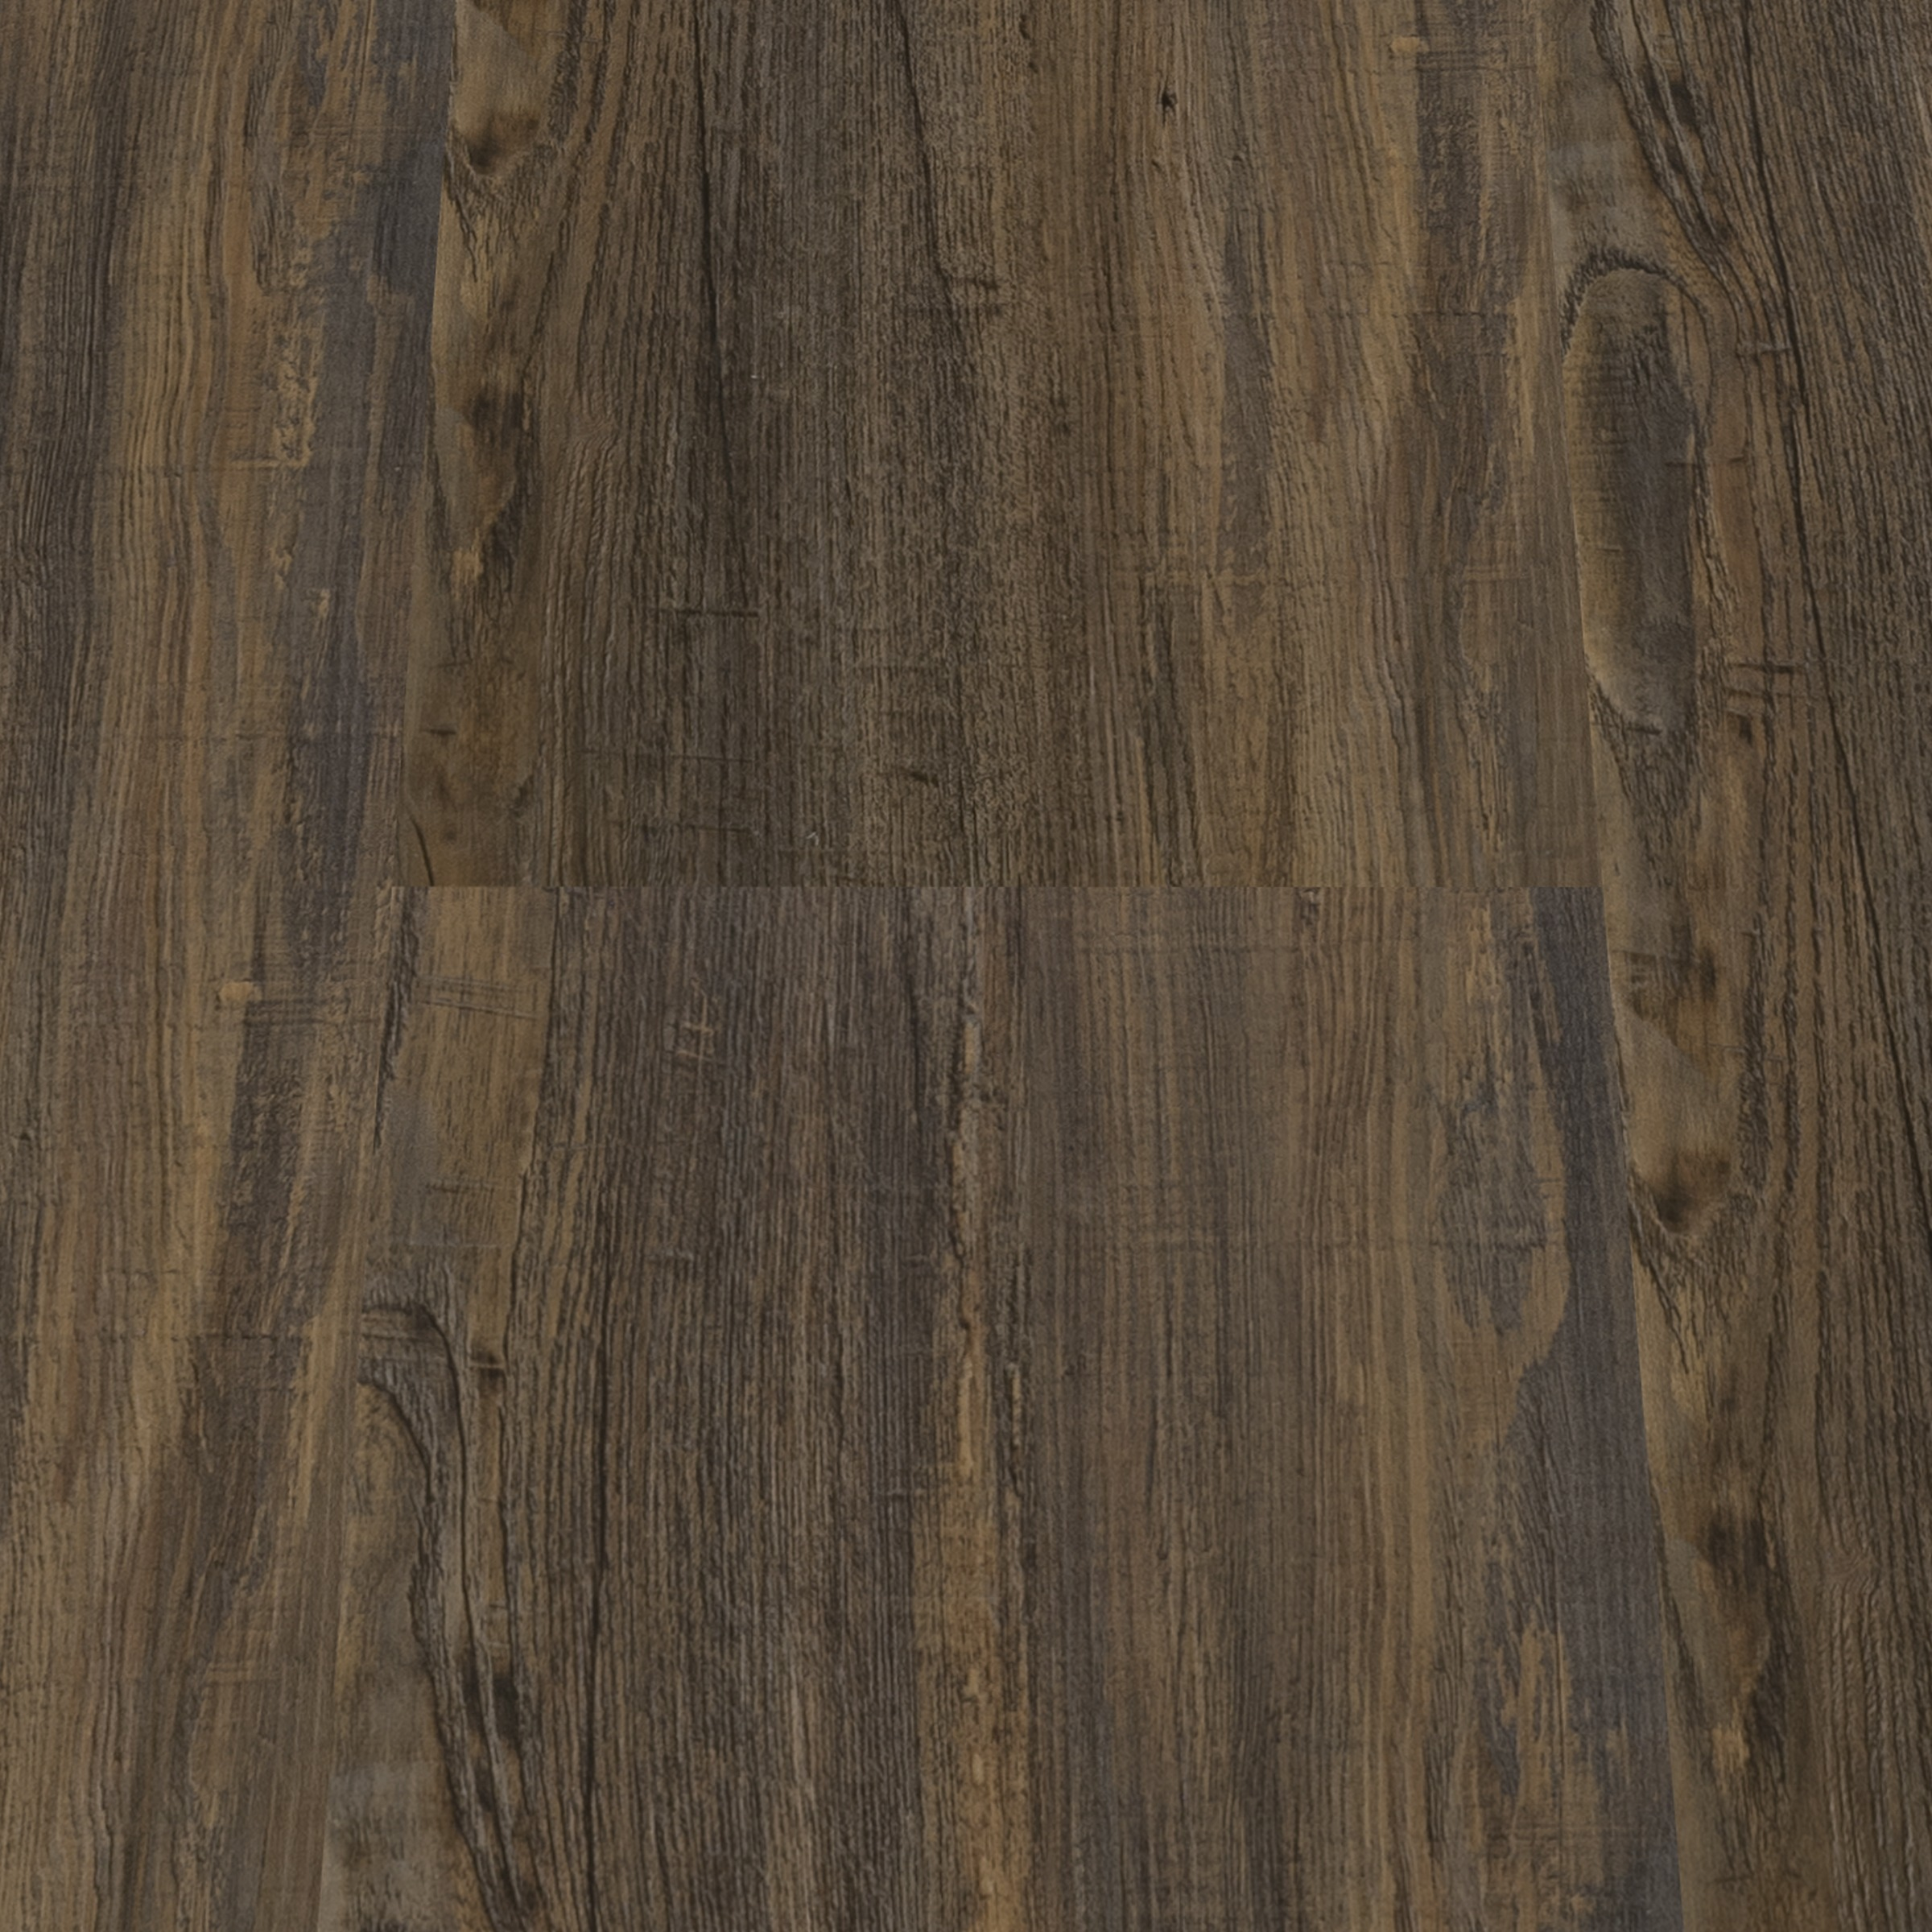 Flexxfloors Click Basic Extra Breed PVC Vloerdeel Sierra Nevada 4 mm 2,79 m2